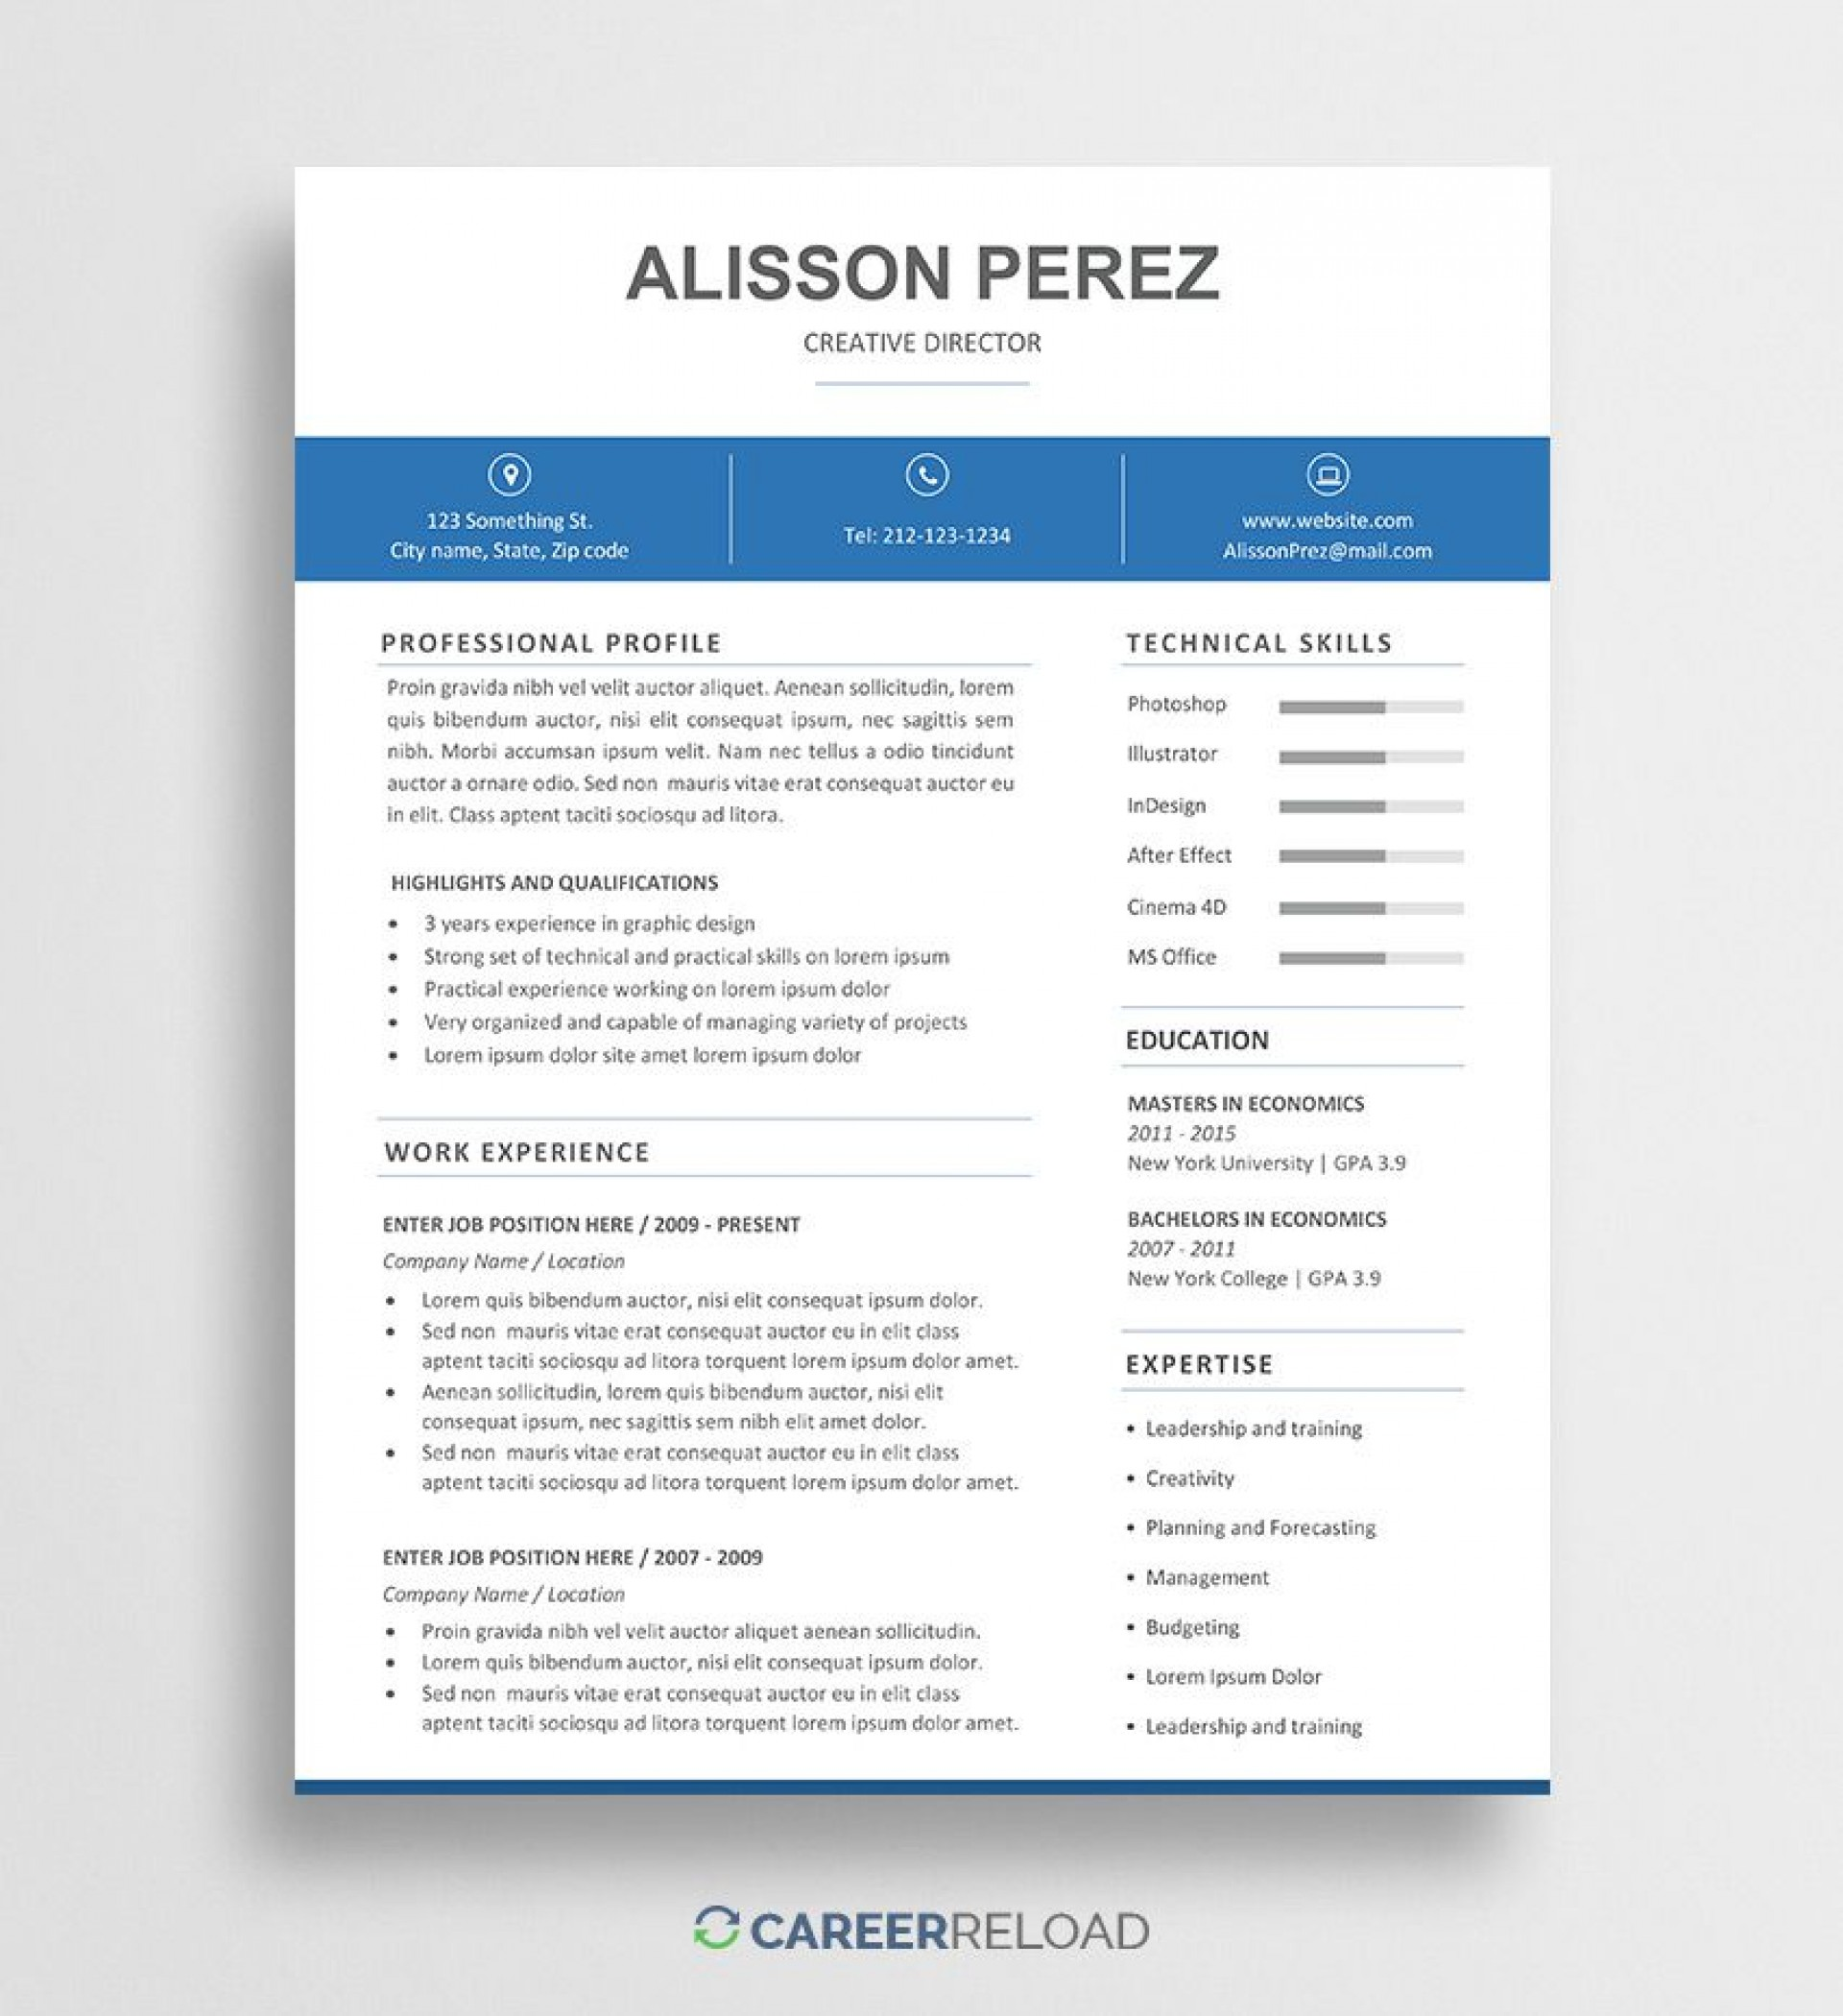 011 Frightening Word Resume Template Free Image  Fresher Format Download 2020 M1920